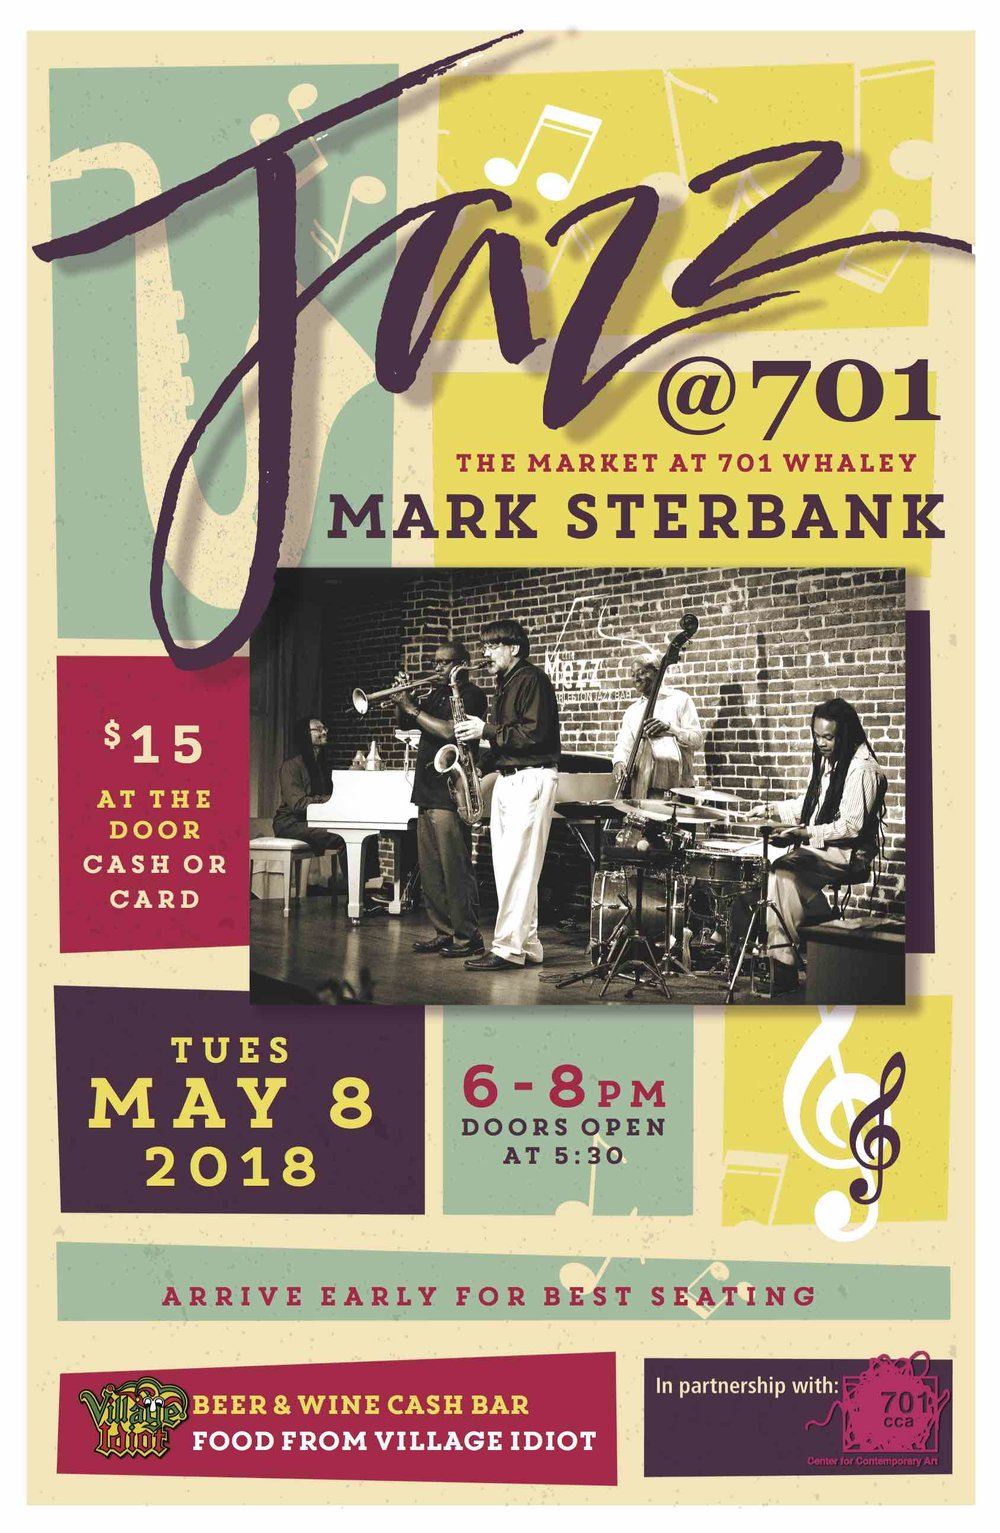 Jazzat701_May20 for email.jpg